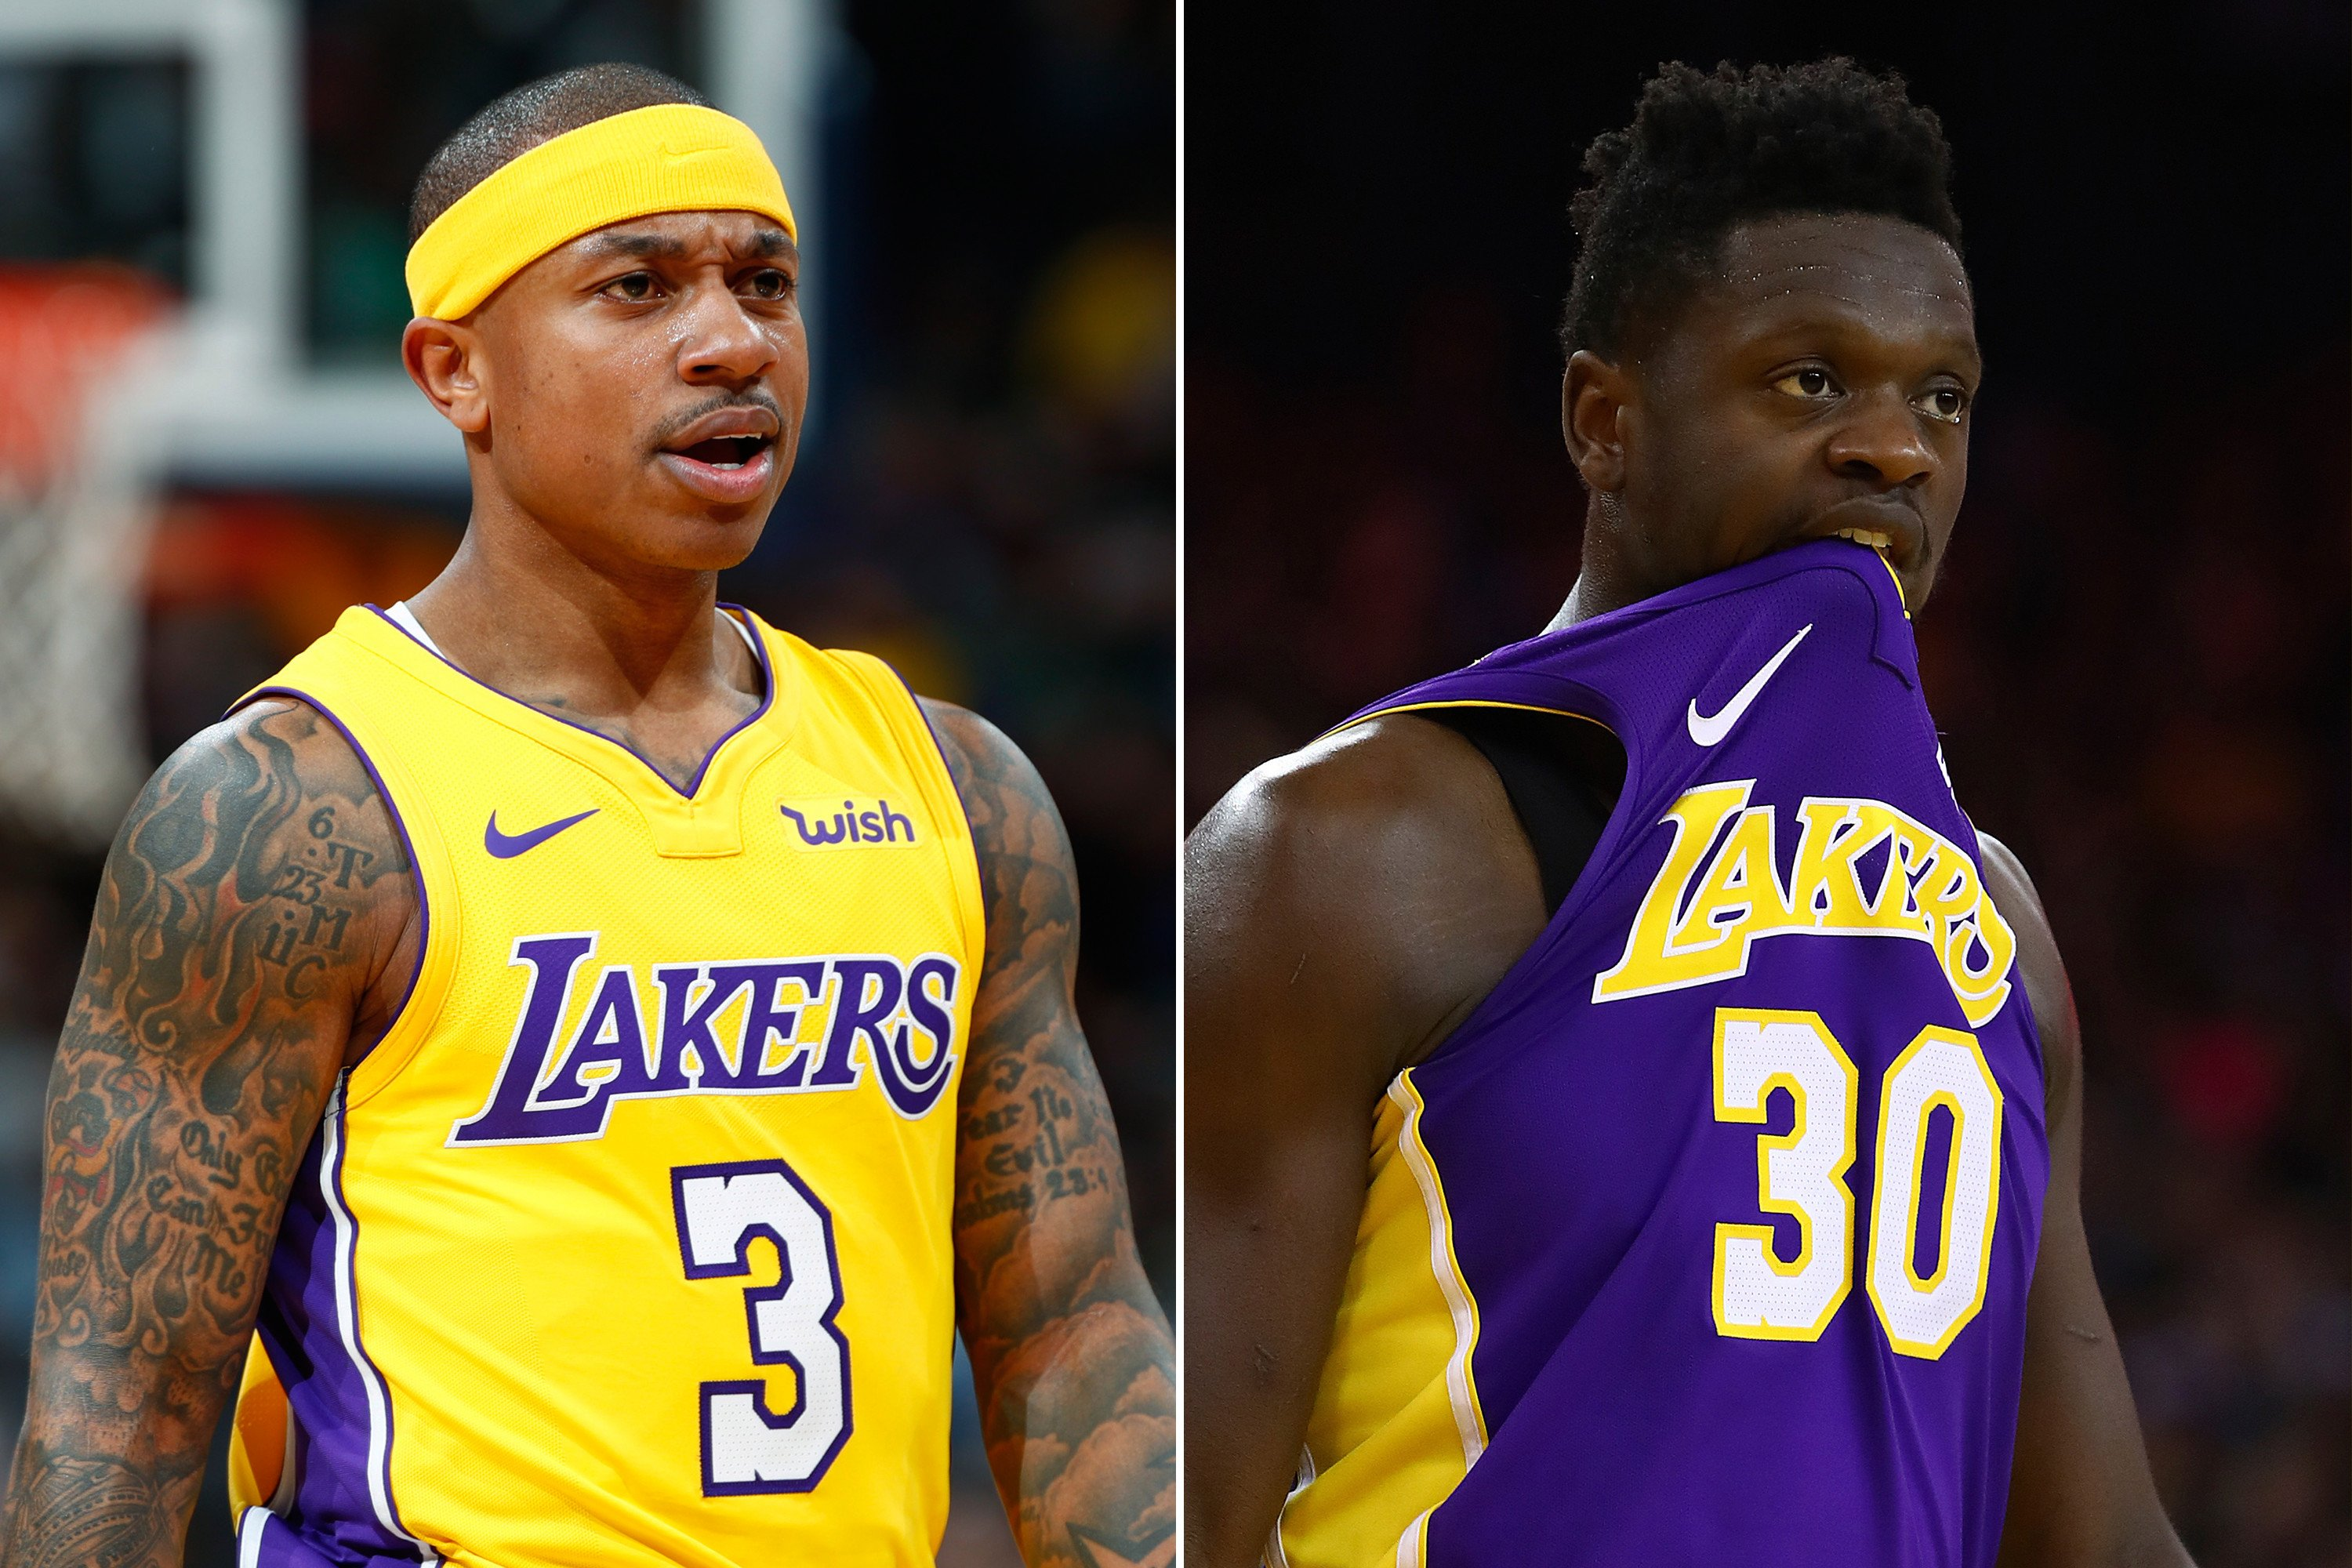 Lakers love Isaiah Thomas and Julius Randle fighting each other